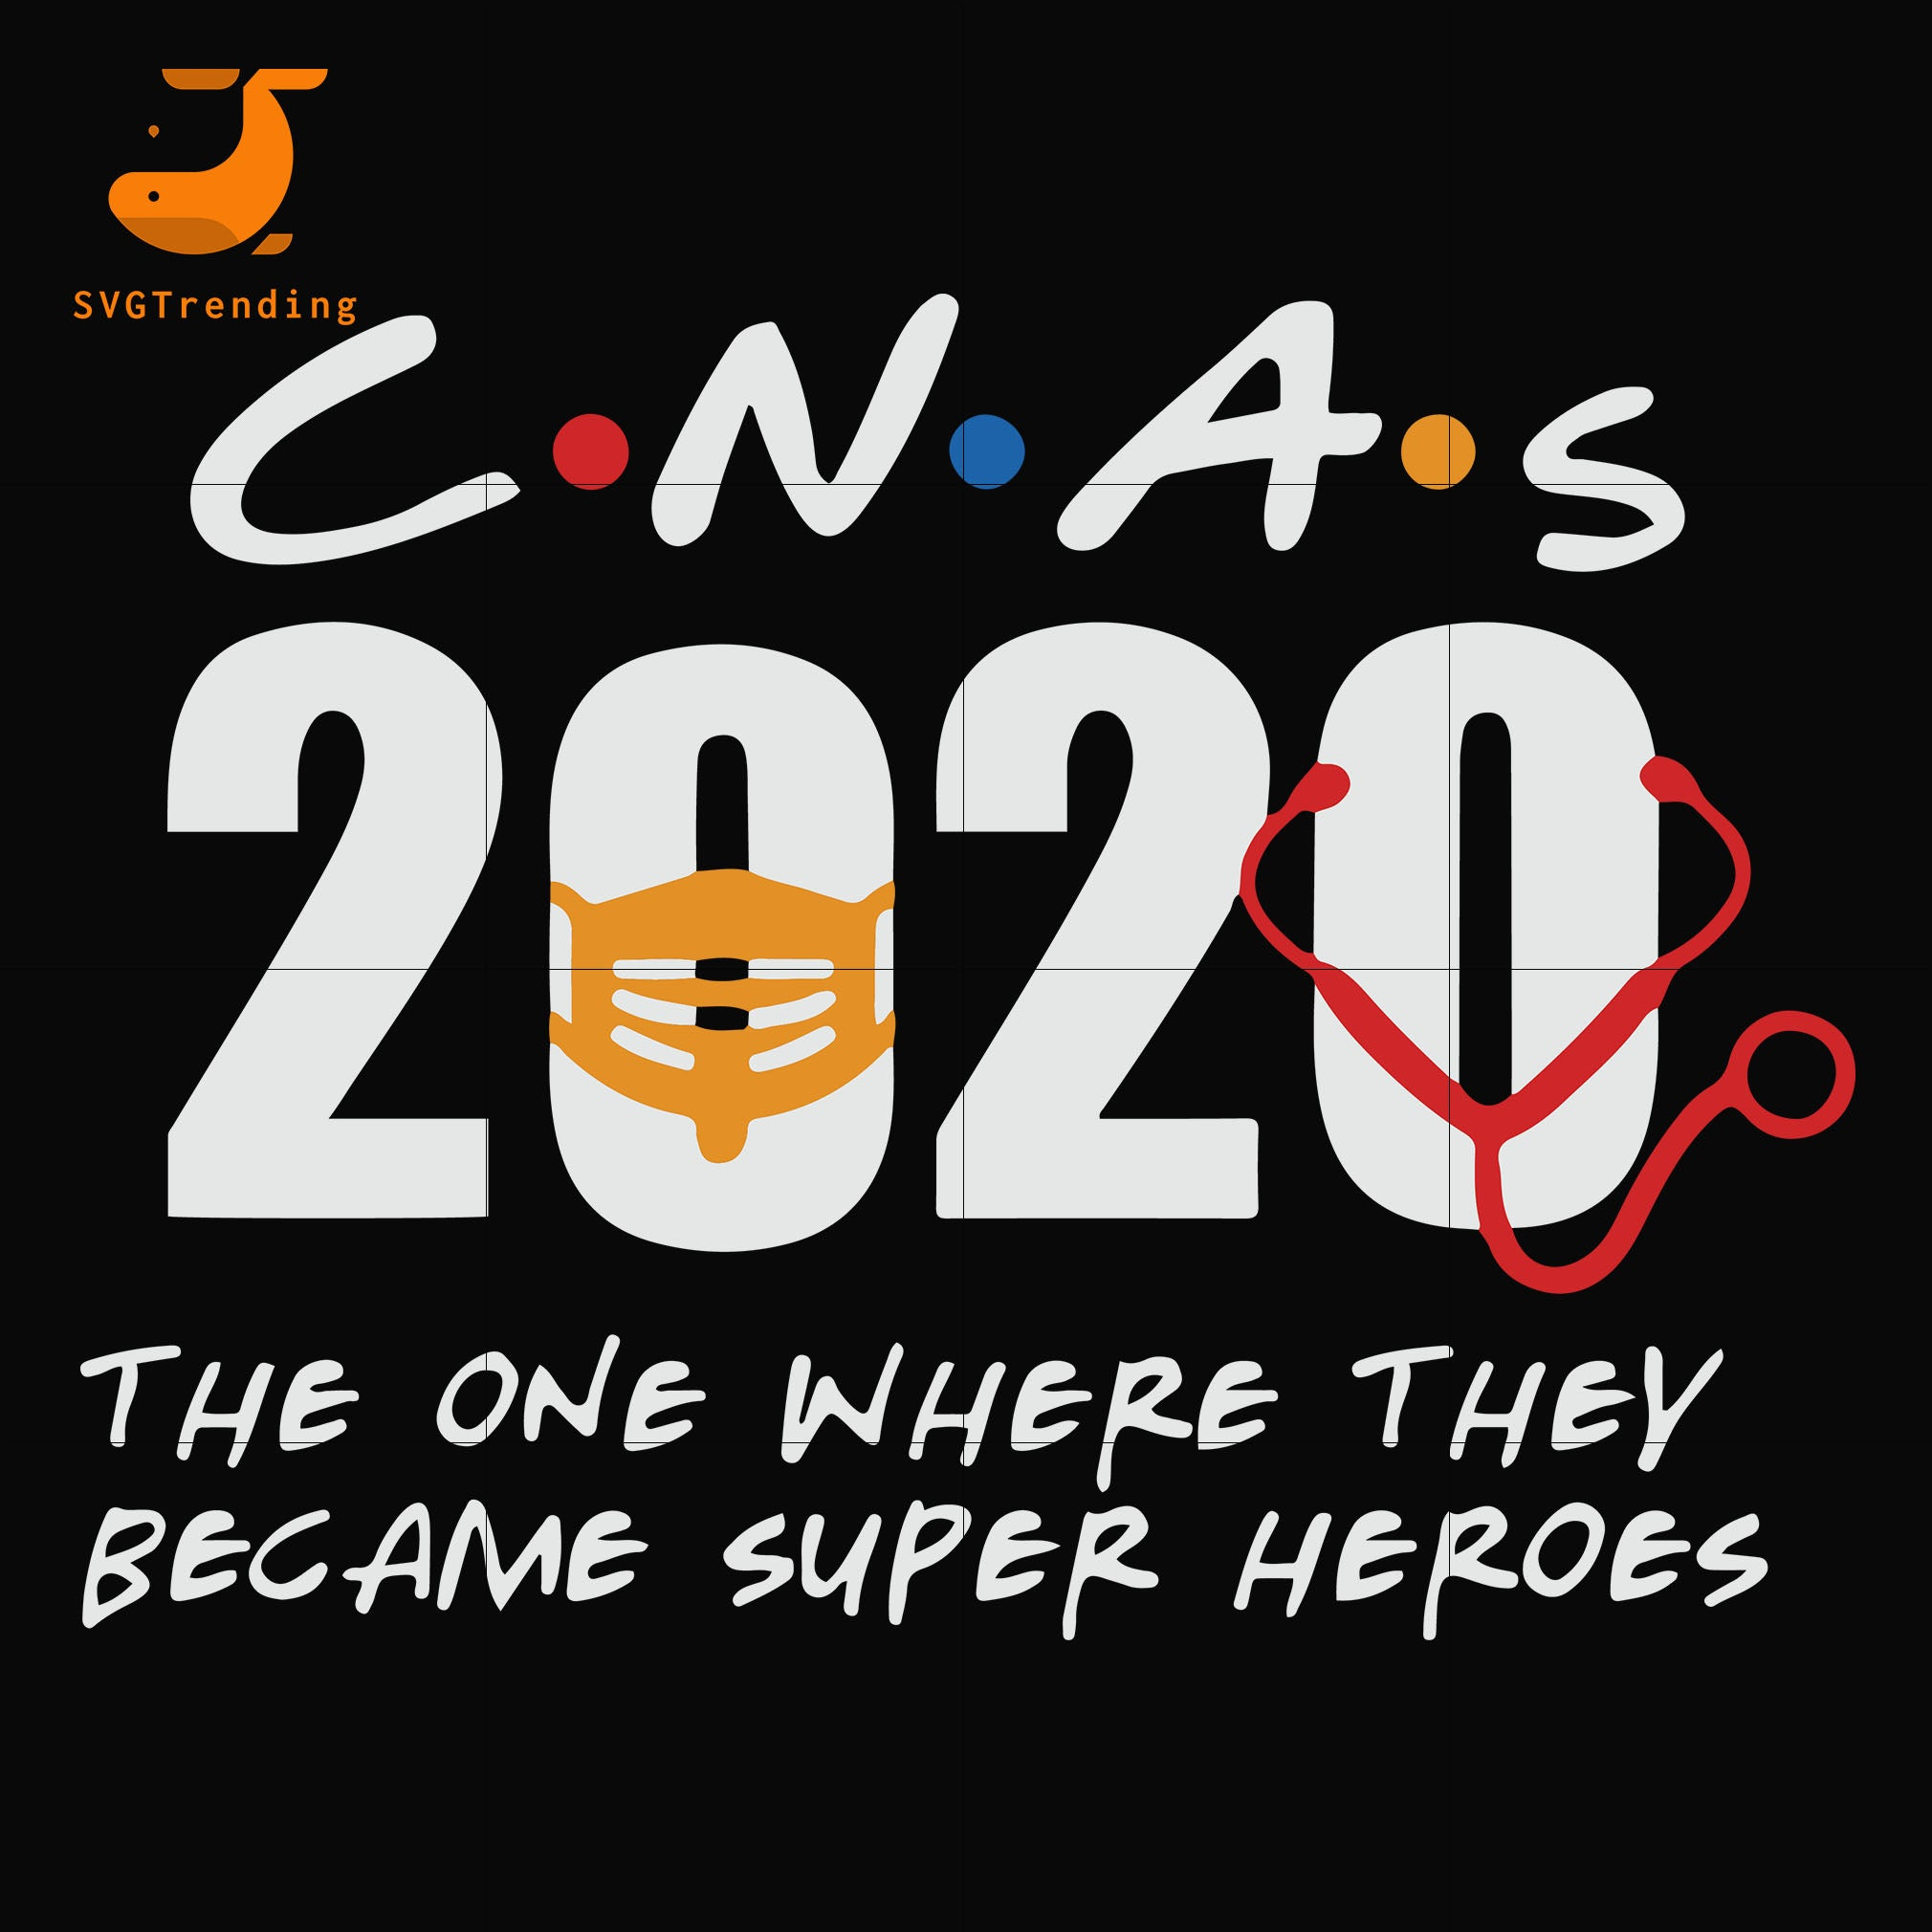 CNAs 2020 the one where they became super heroes svg ,dxf,eps,png digital file